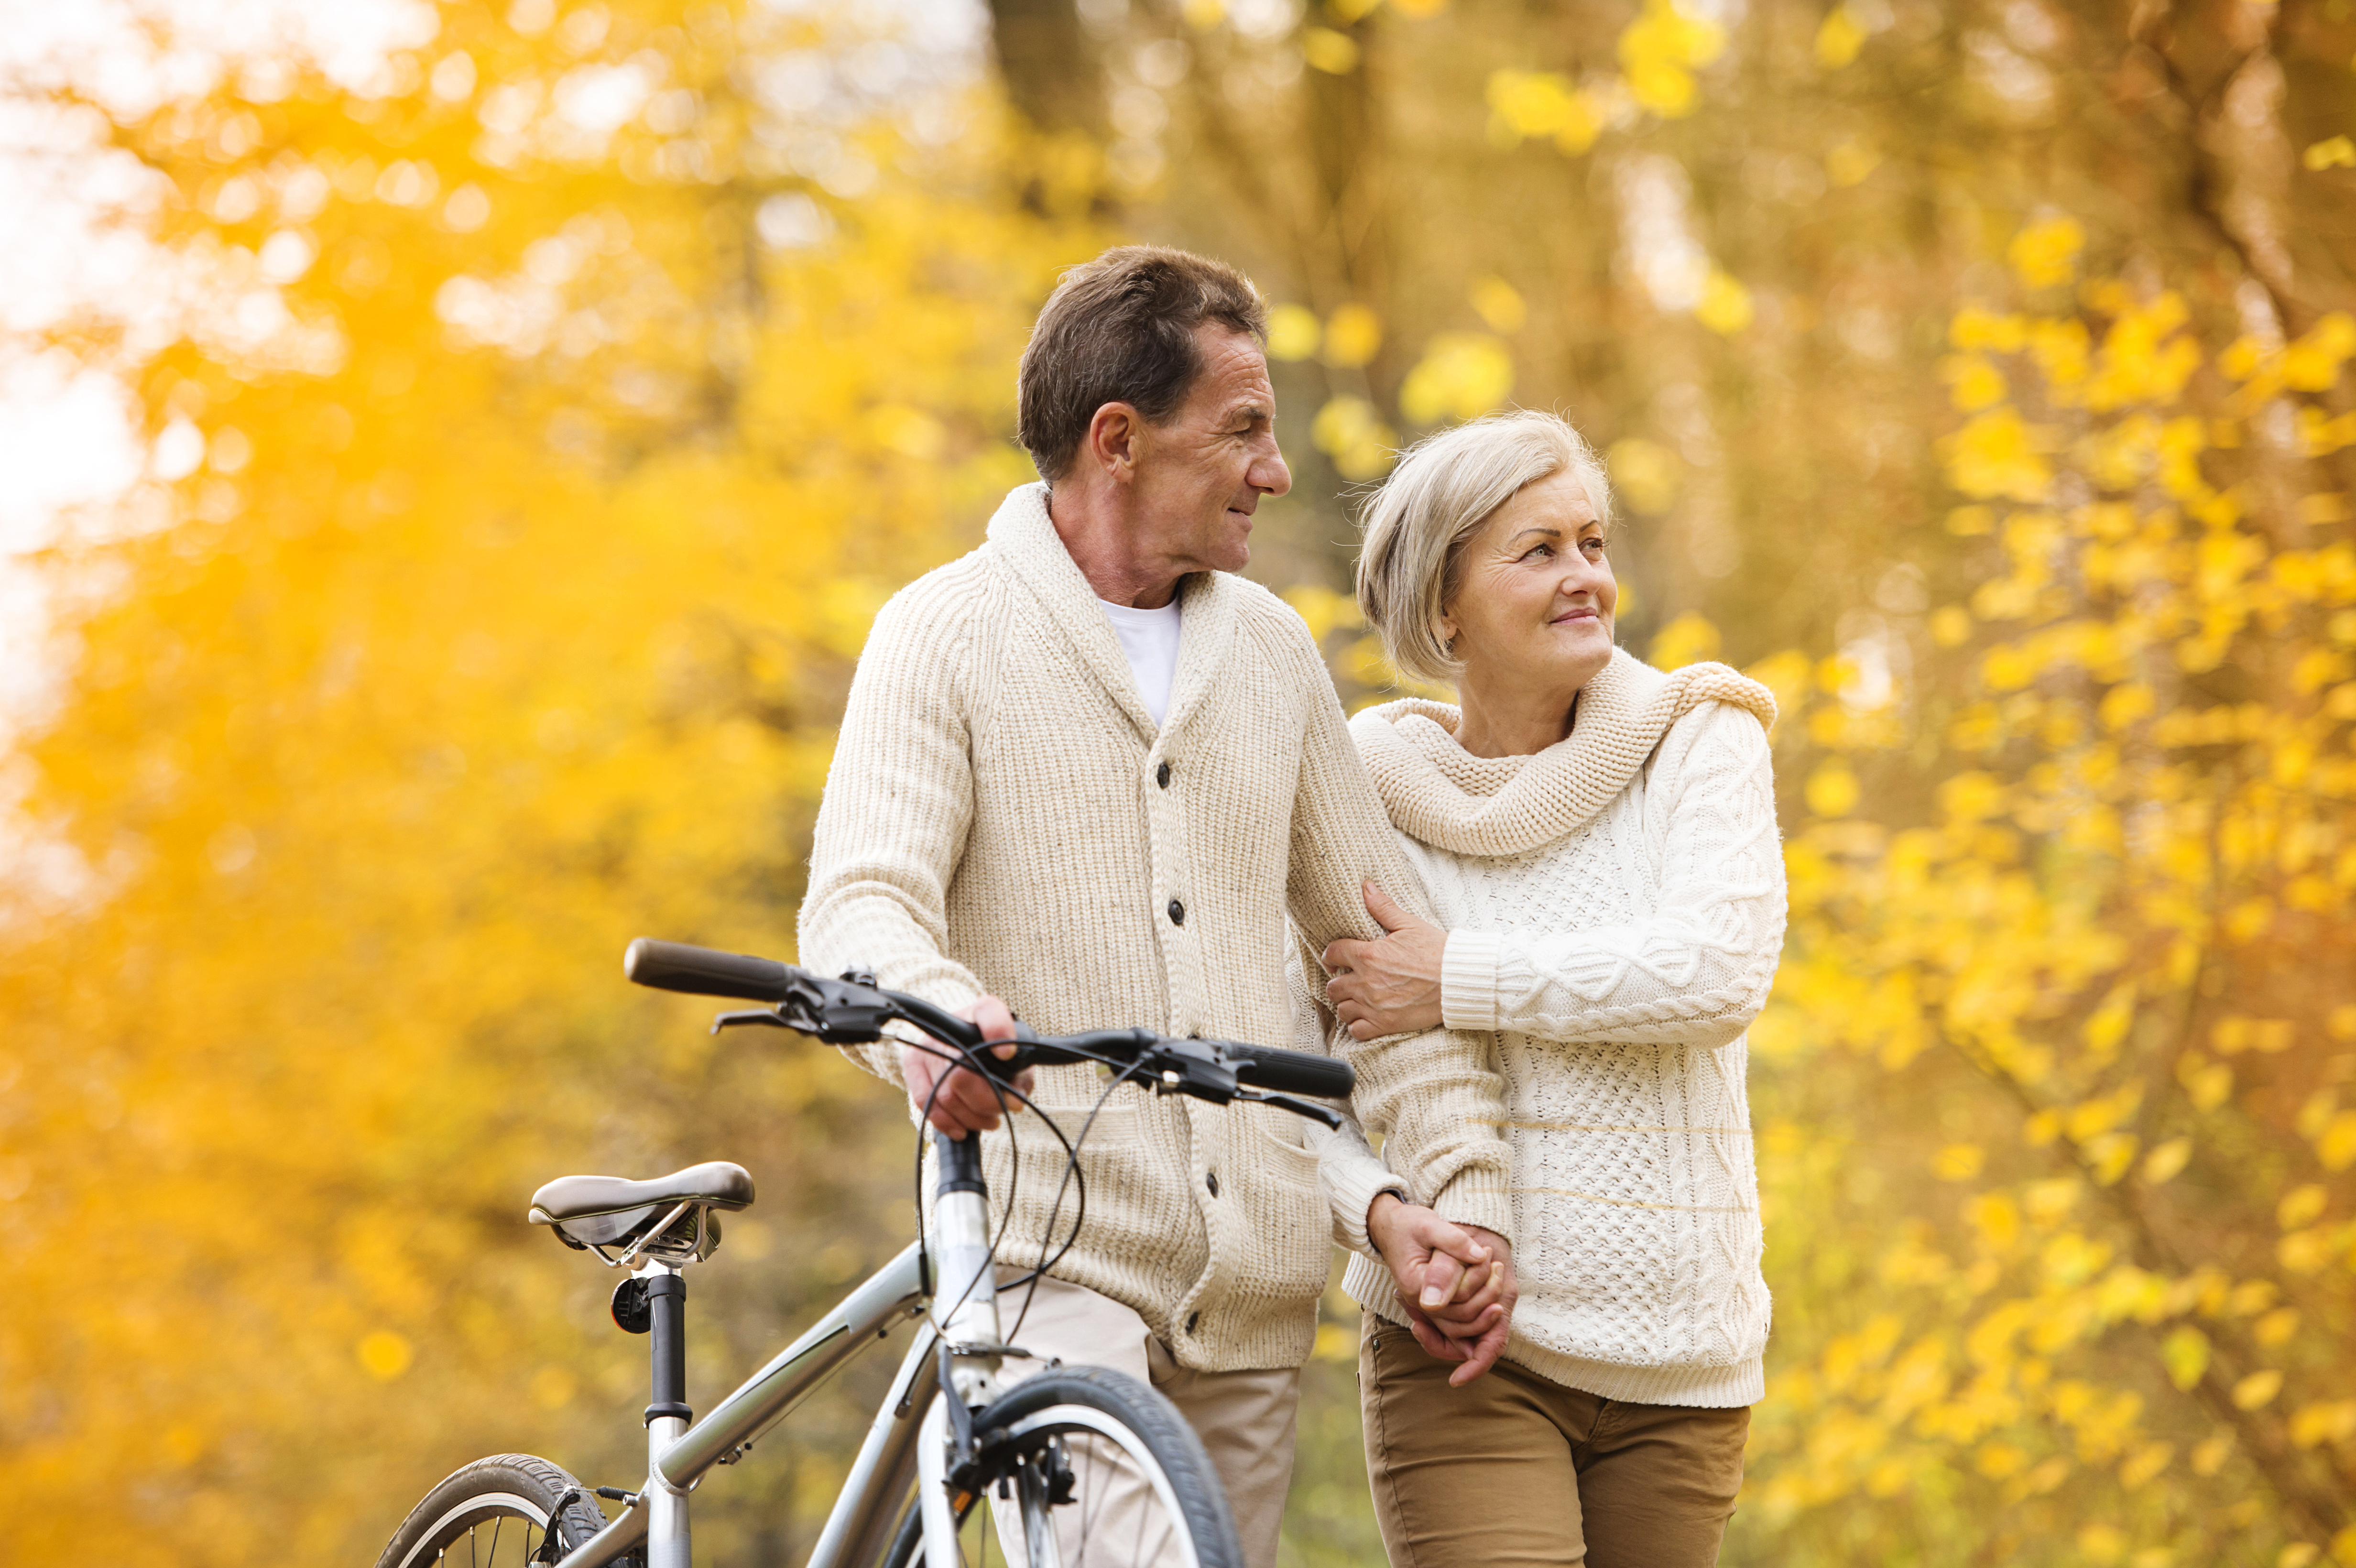 Elderly couple walking through a fall forest with a bicycle.